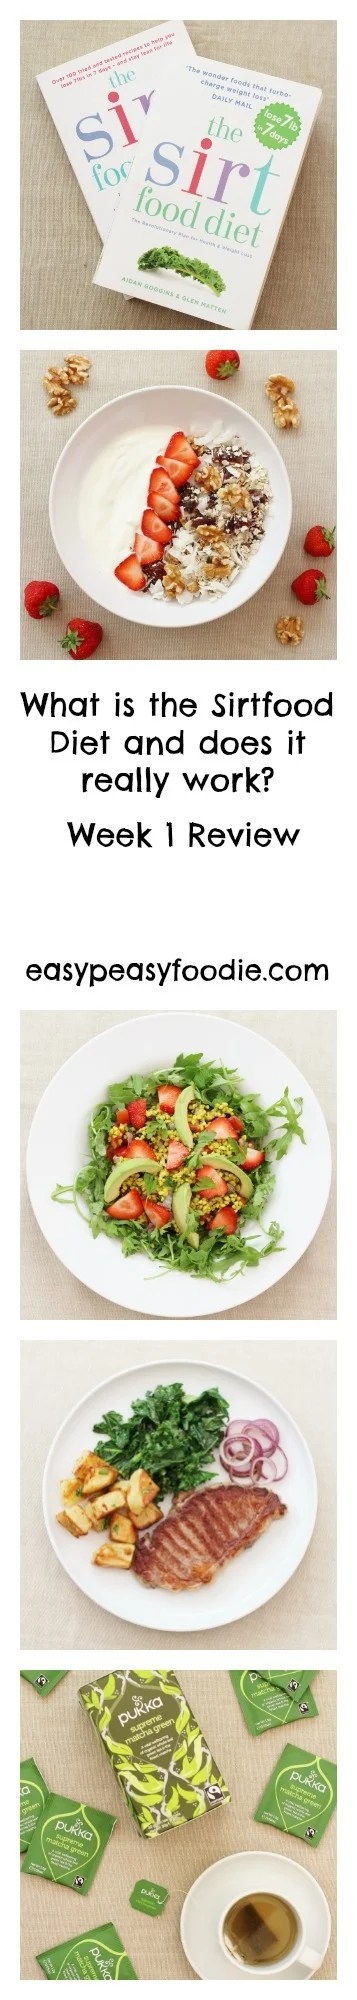 What is the sirtfood diet and does it really work part 2 easy what is the sirtfood diet and does it really work week 1 review forumfinder Choice Image